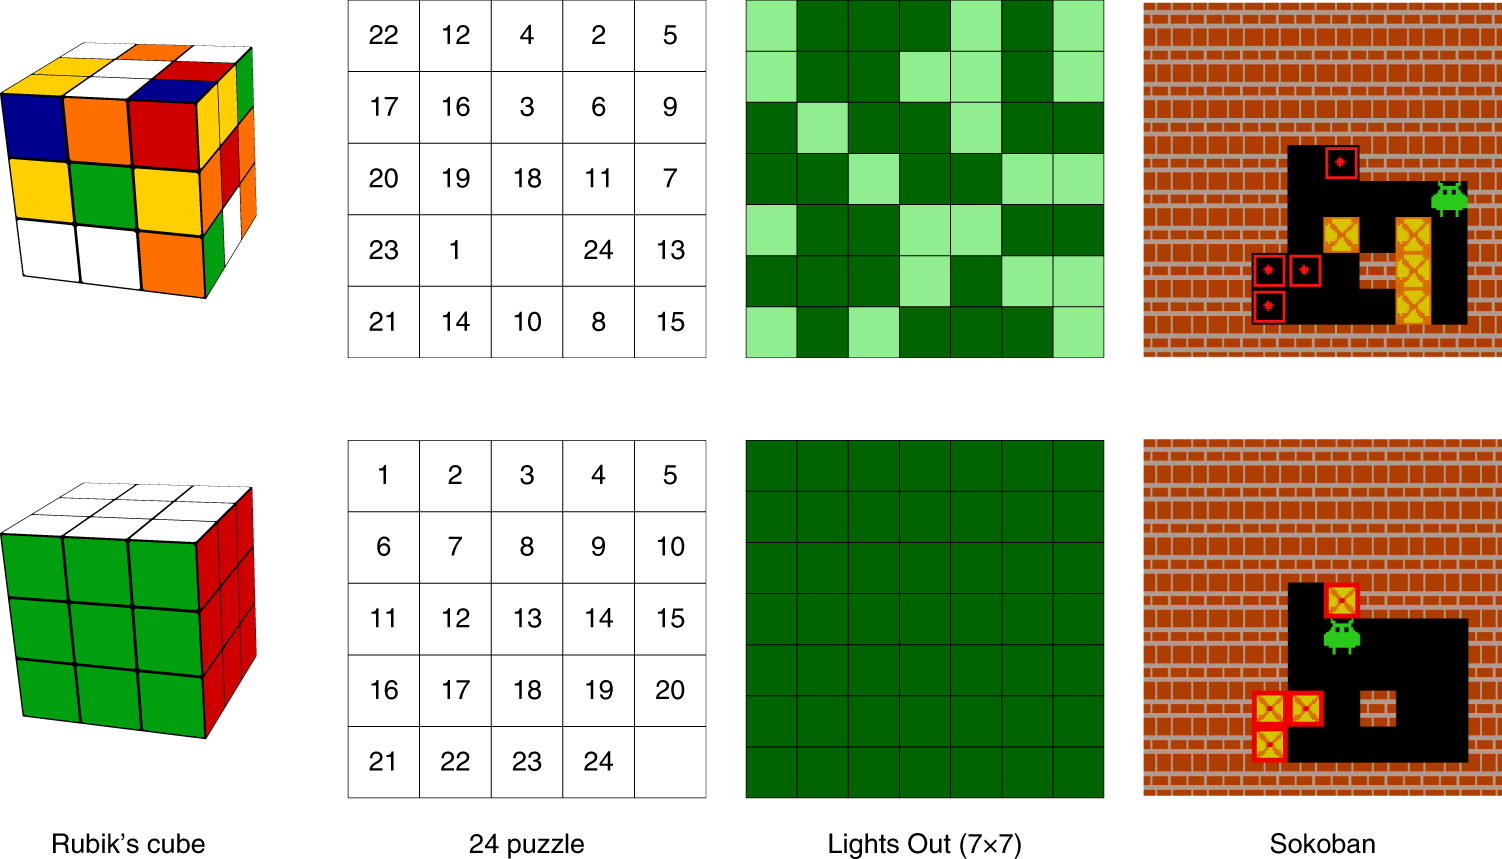 Solving the Rubik's cube with deep reinforcement learning and se